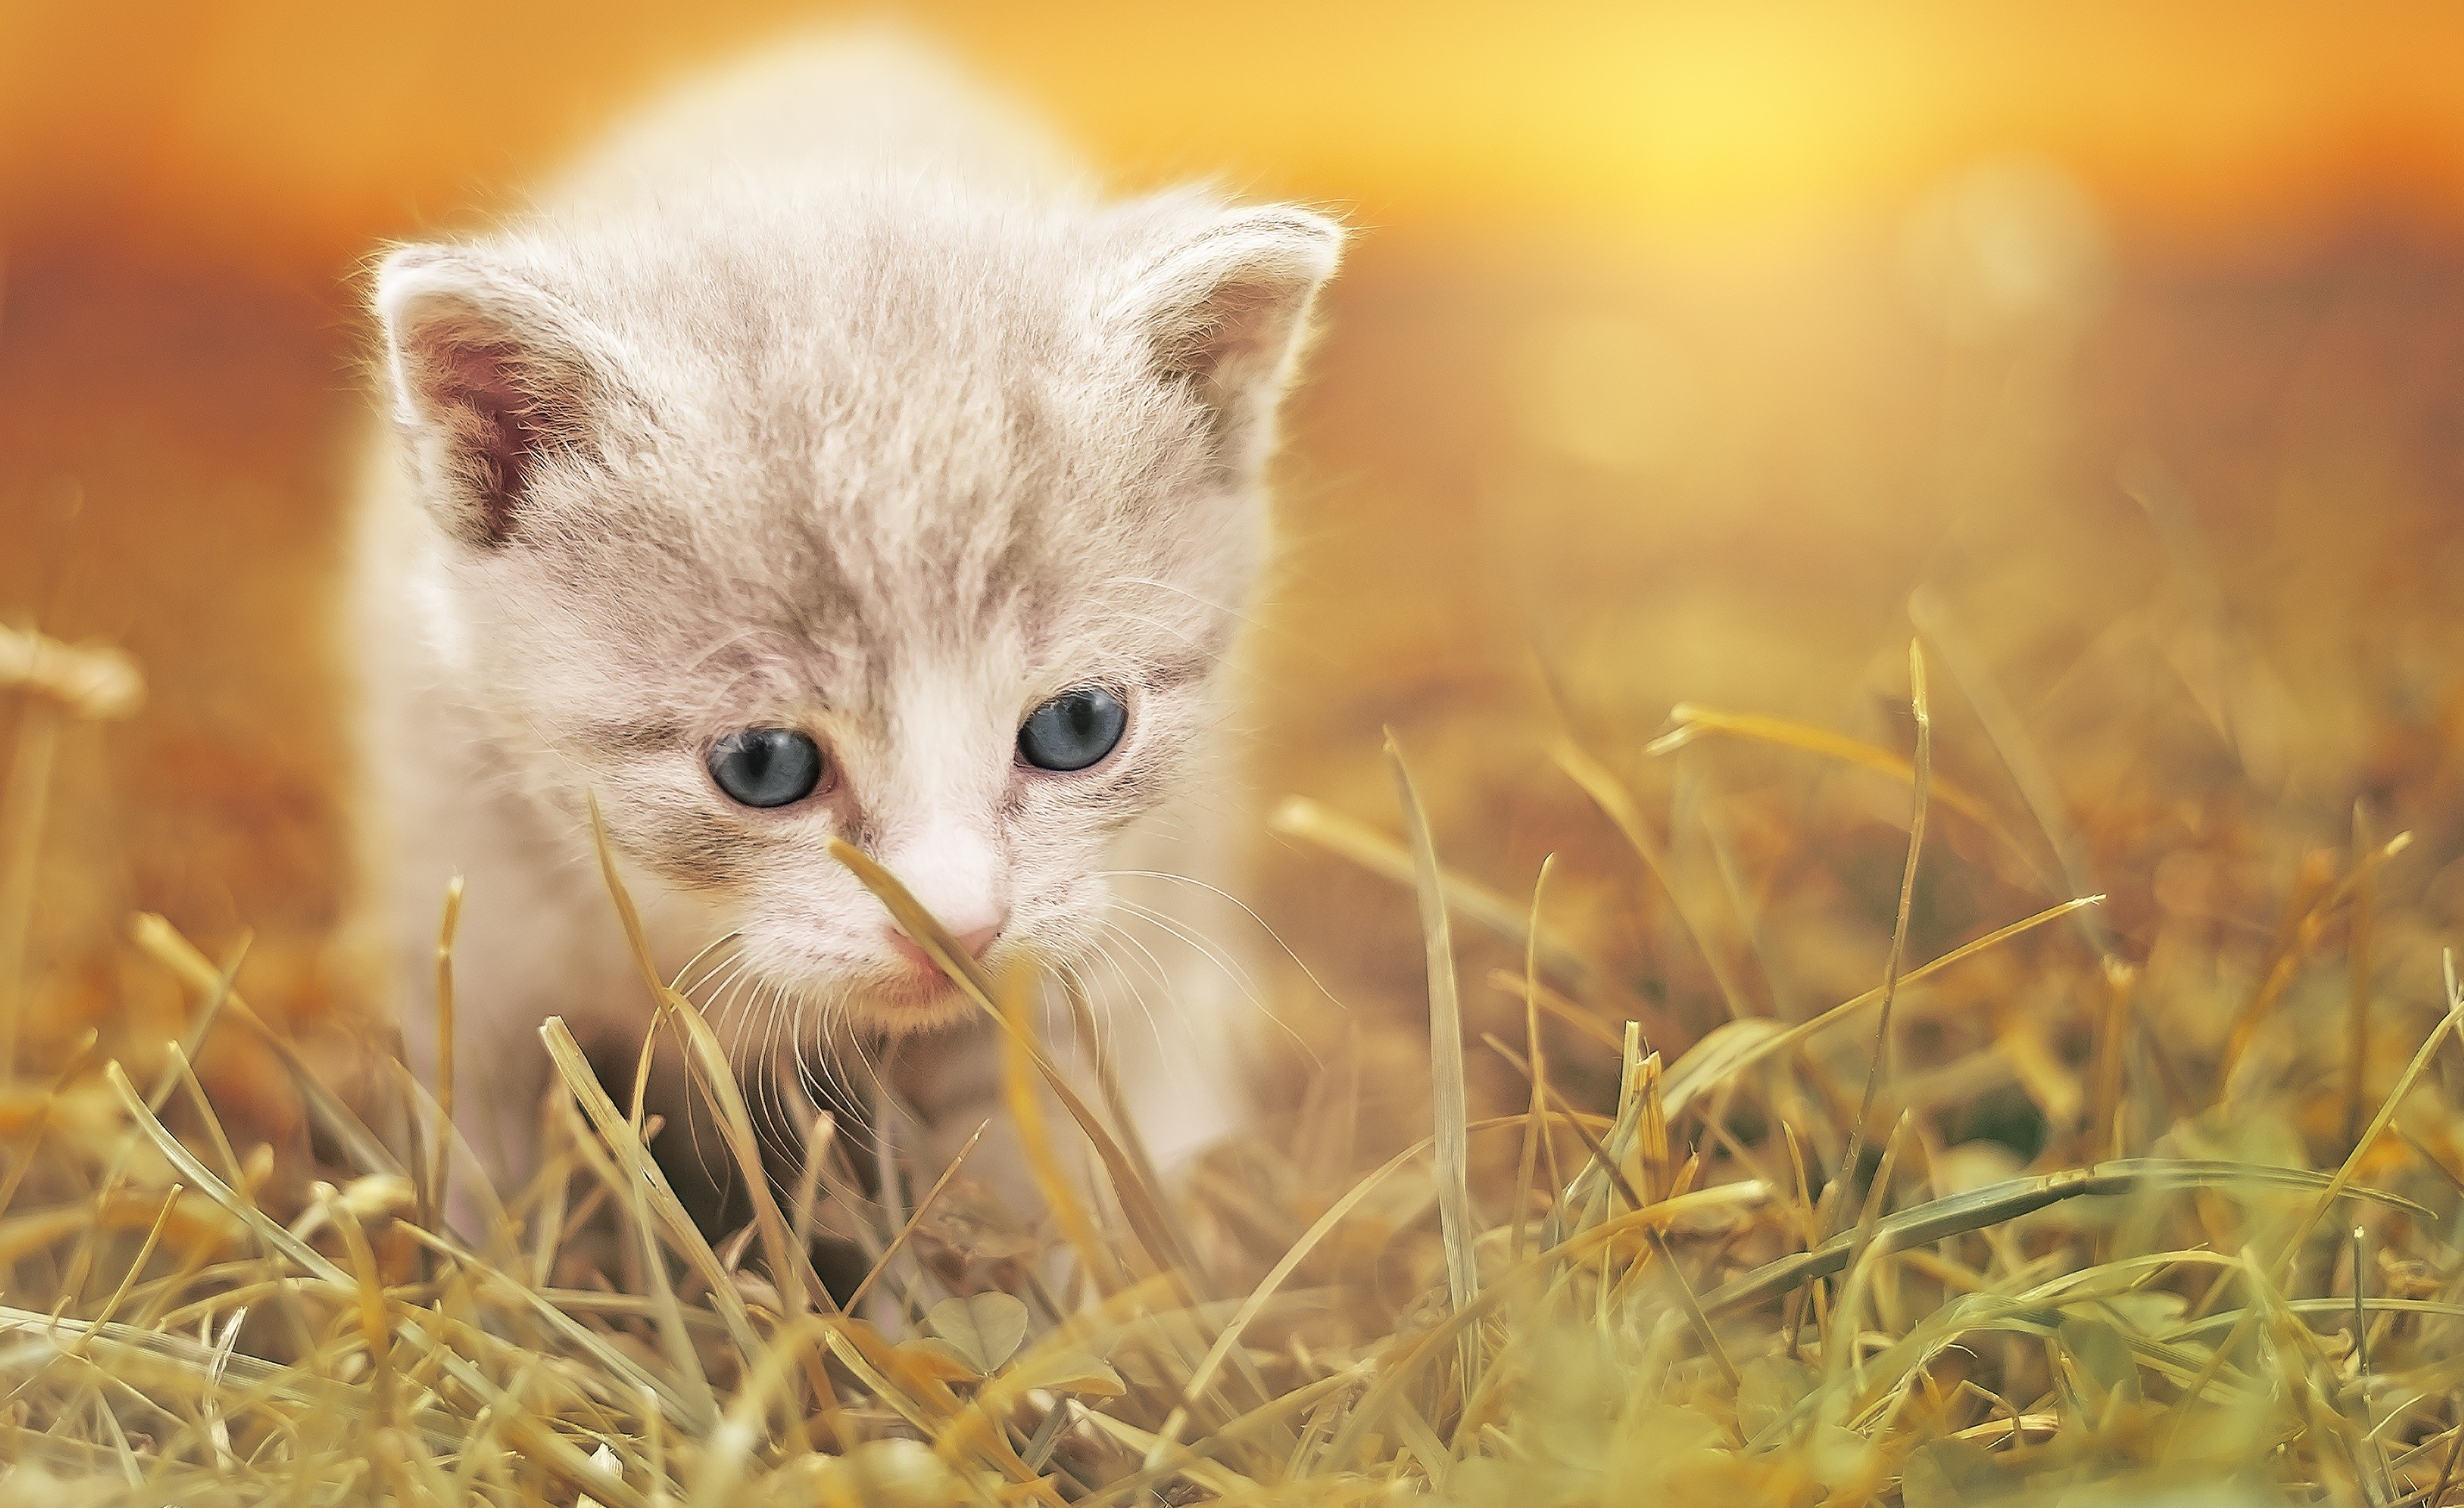 Res: 3160x1934, Baby cat, Cute kitten, Adorable, HD